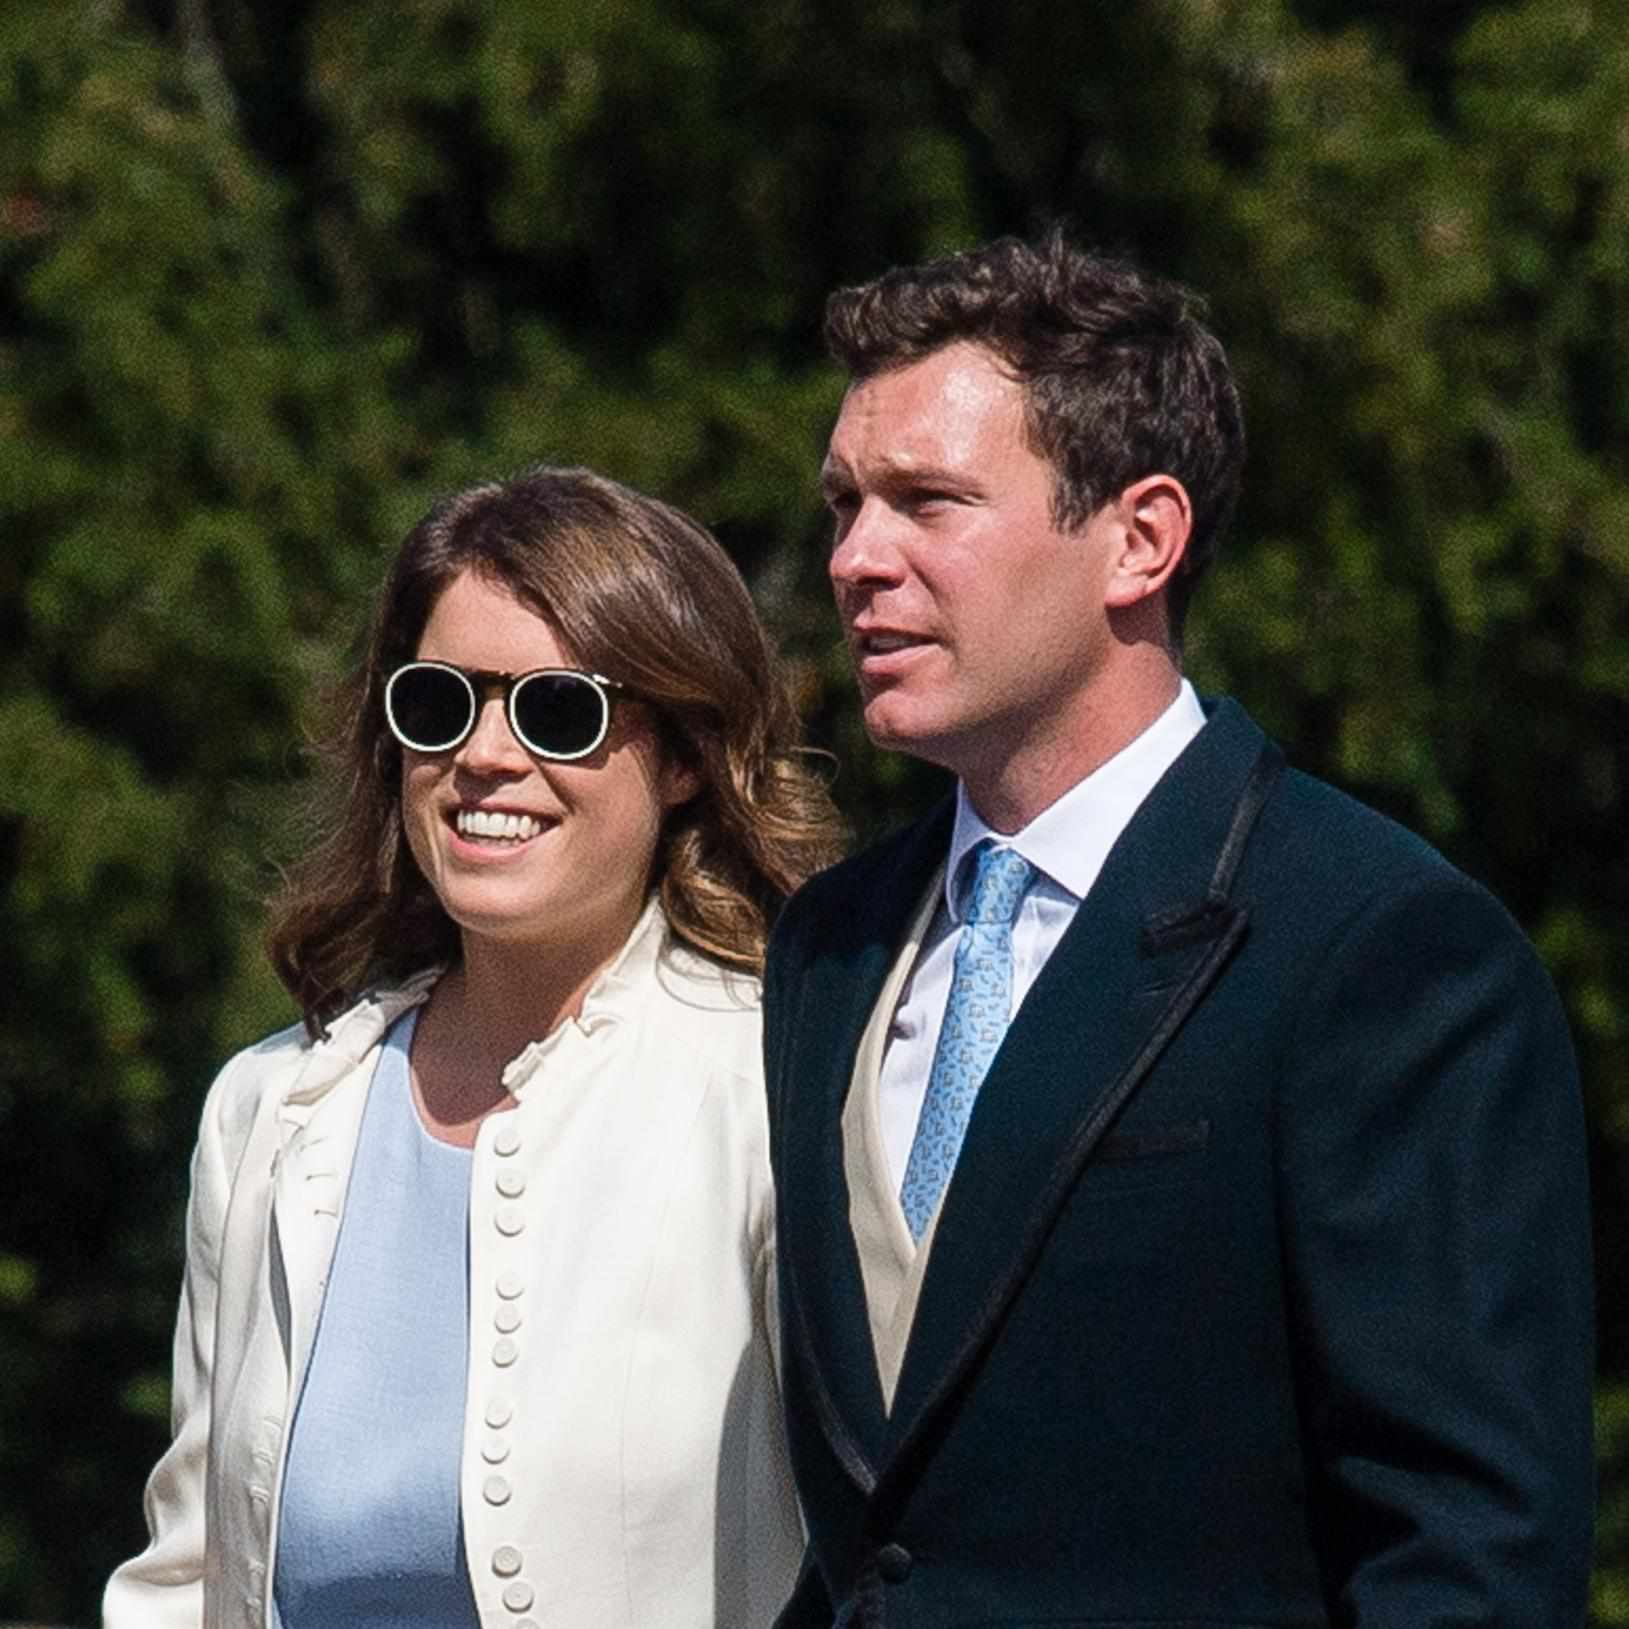 Princess Eugenie Wedding Televised.The Bbc Officially Declines To Broadcast Princess Eugenie S Upcoming